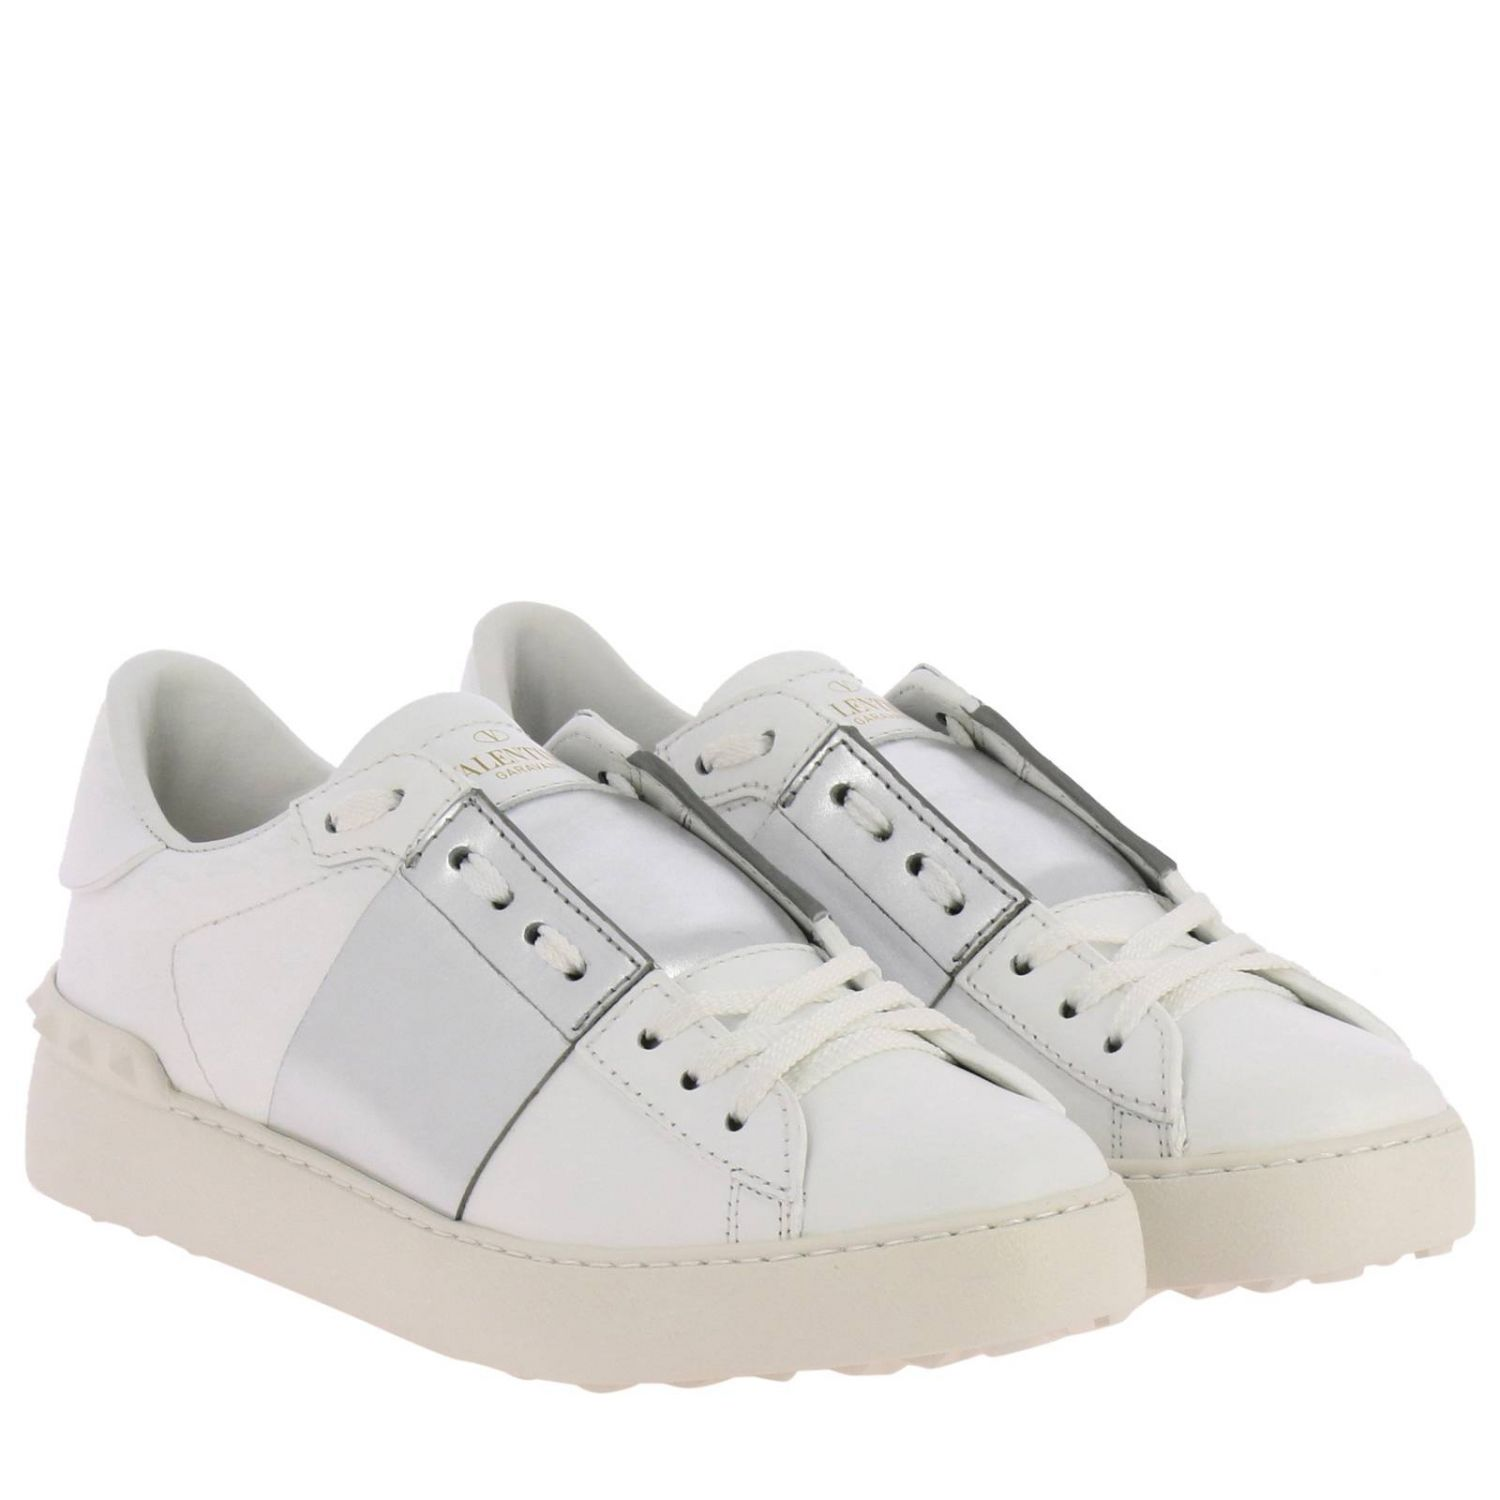 Valentino Garavani Open Rockstud lace-up genuine leather sneakers with laminated band white 2